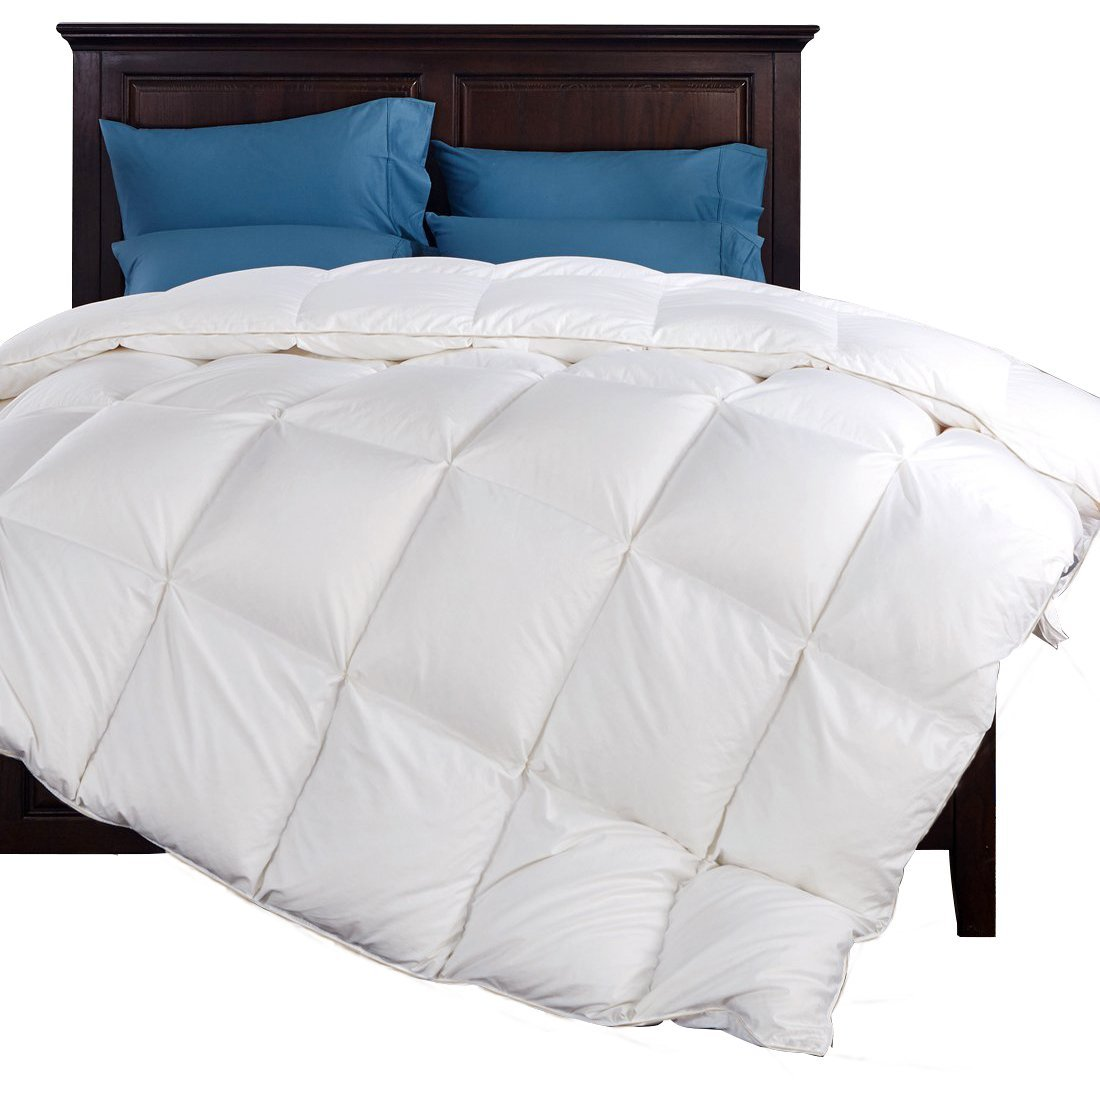 style and blue best comforter pict on files twin grey dorm covers xl royal incredible of image duvet down white black